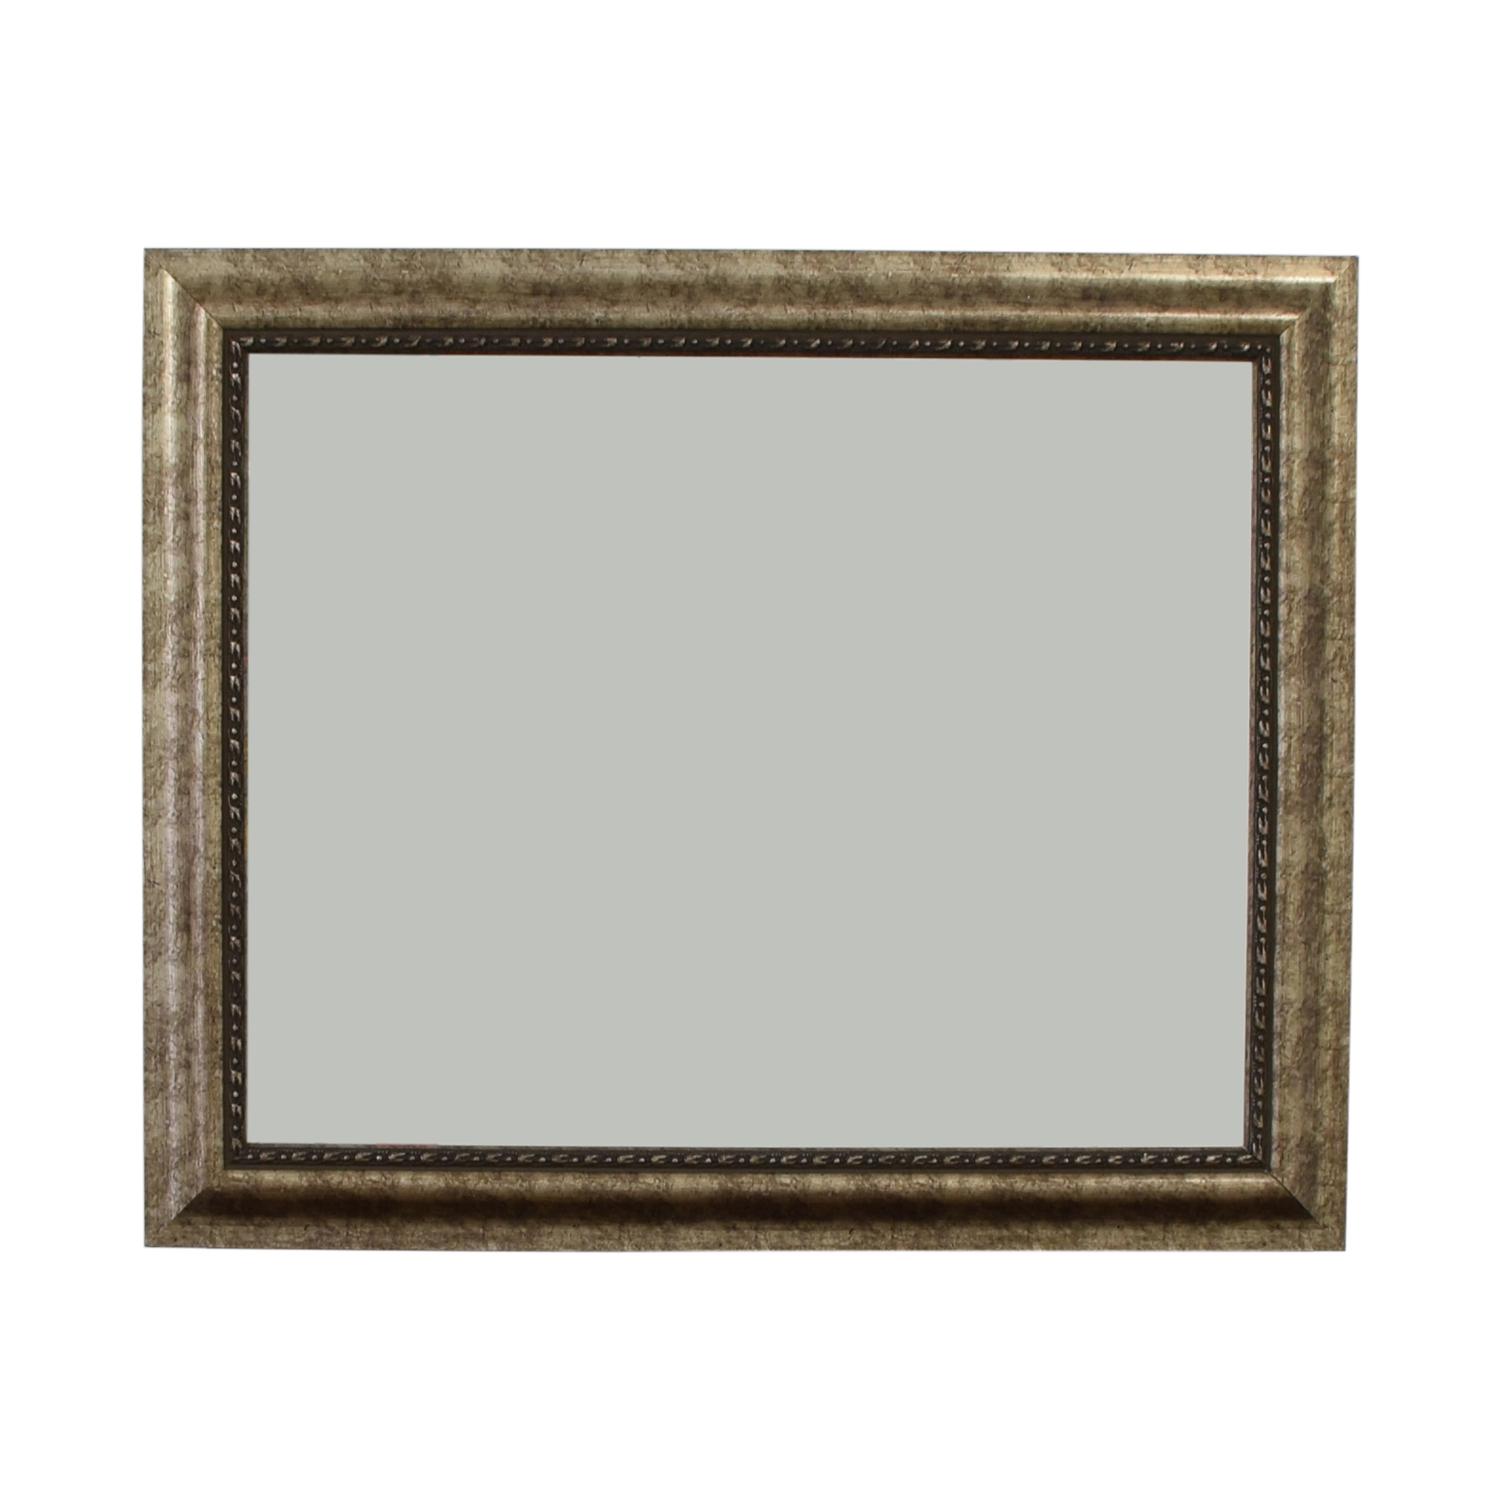 buy Bed Bath & Beyond Bed Bath & Beyond Large Framed Mirror online